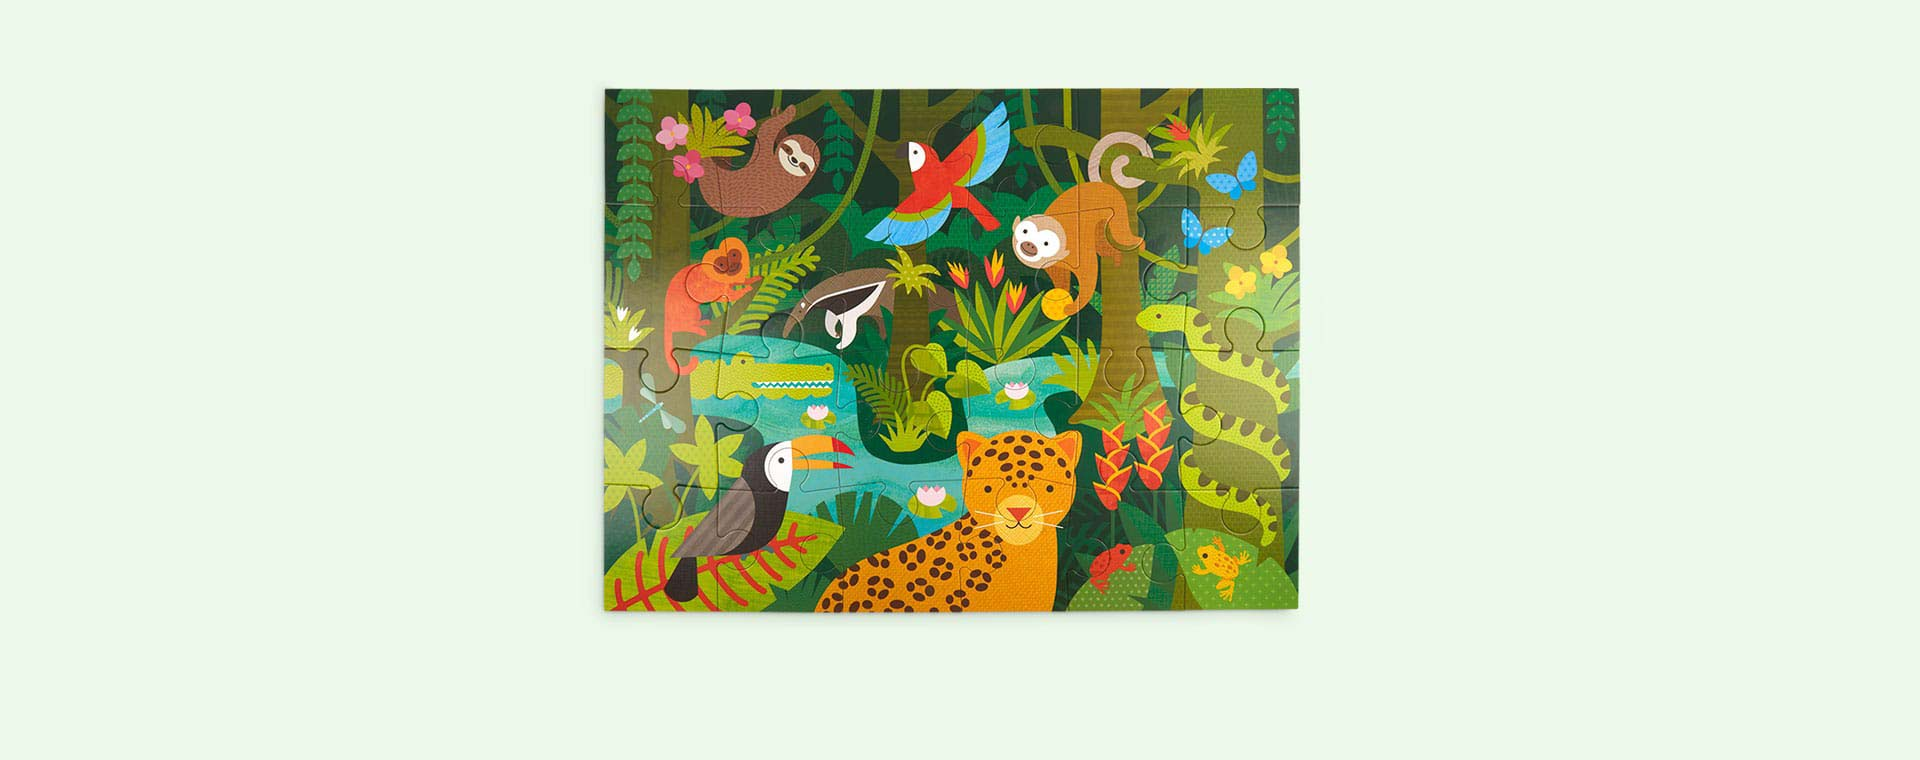 Rainforrest Petit Collage Floor Puzzle